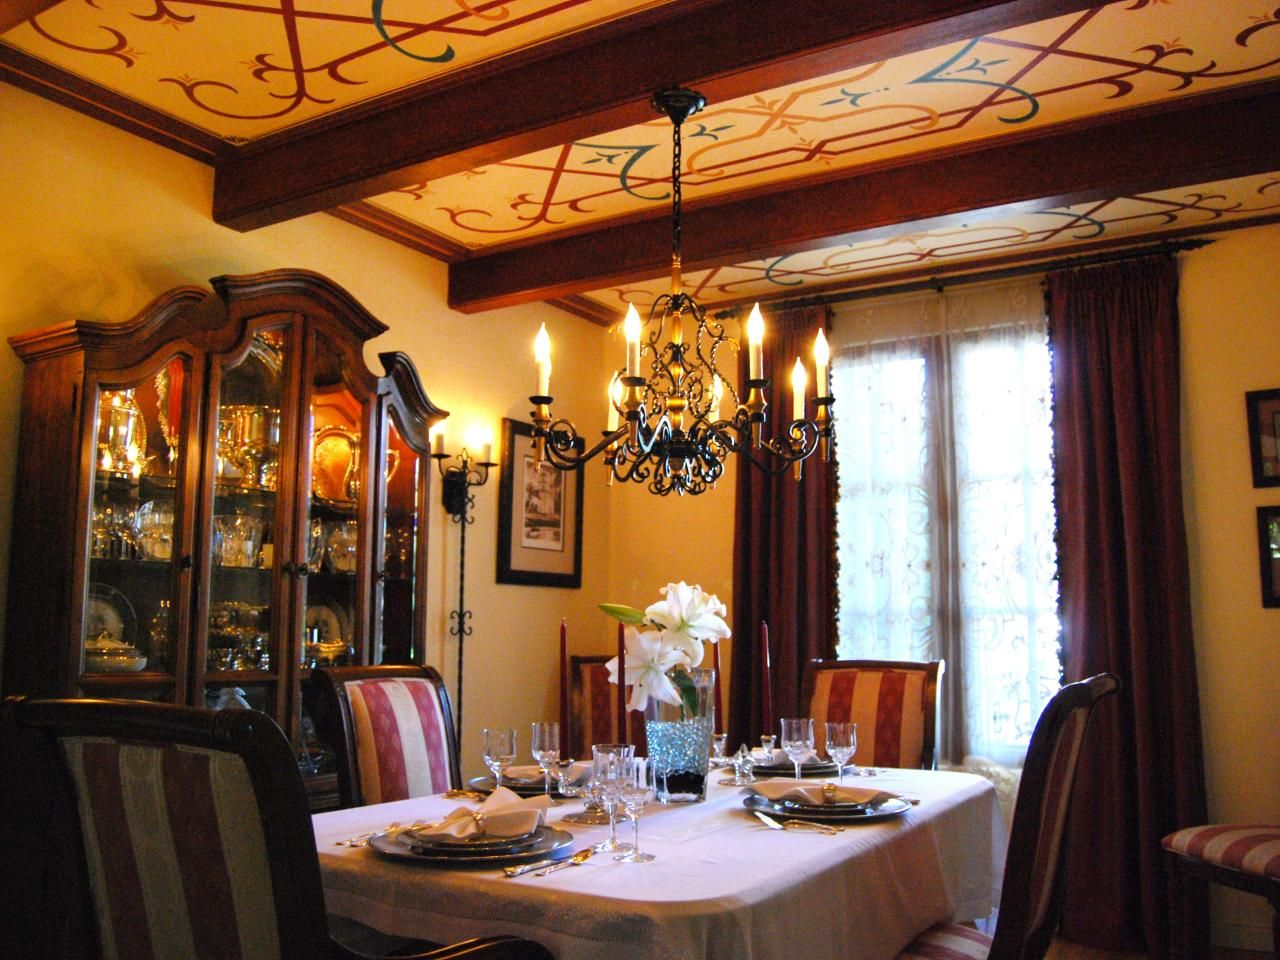 Spanish Style Home Decorating Ideas Part - 49: Spanish-Style Decorating Ideas